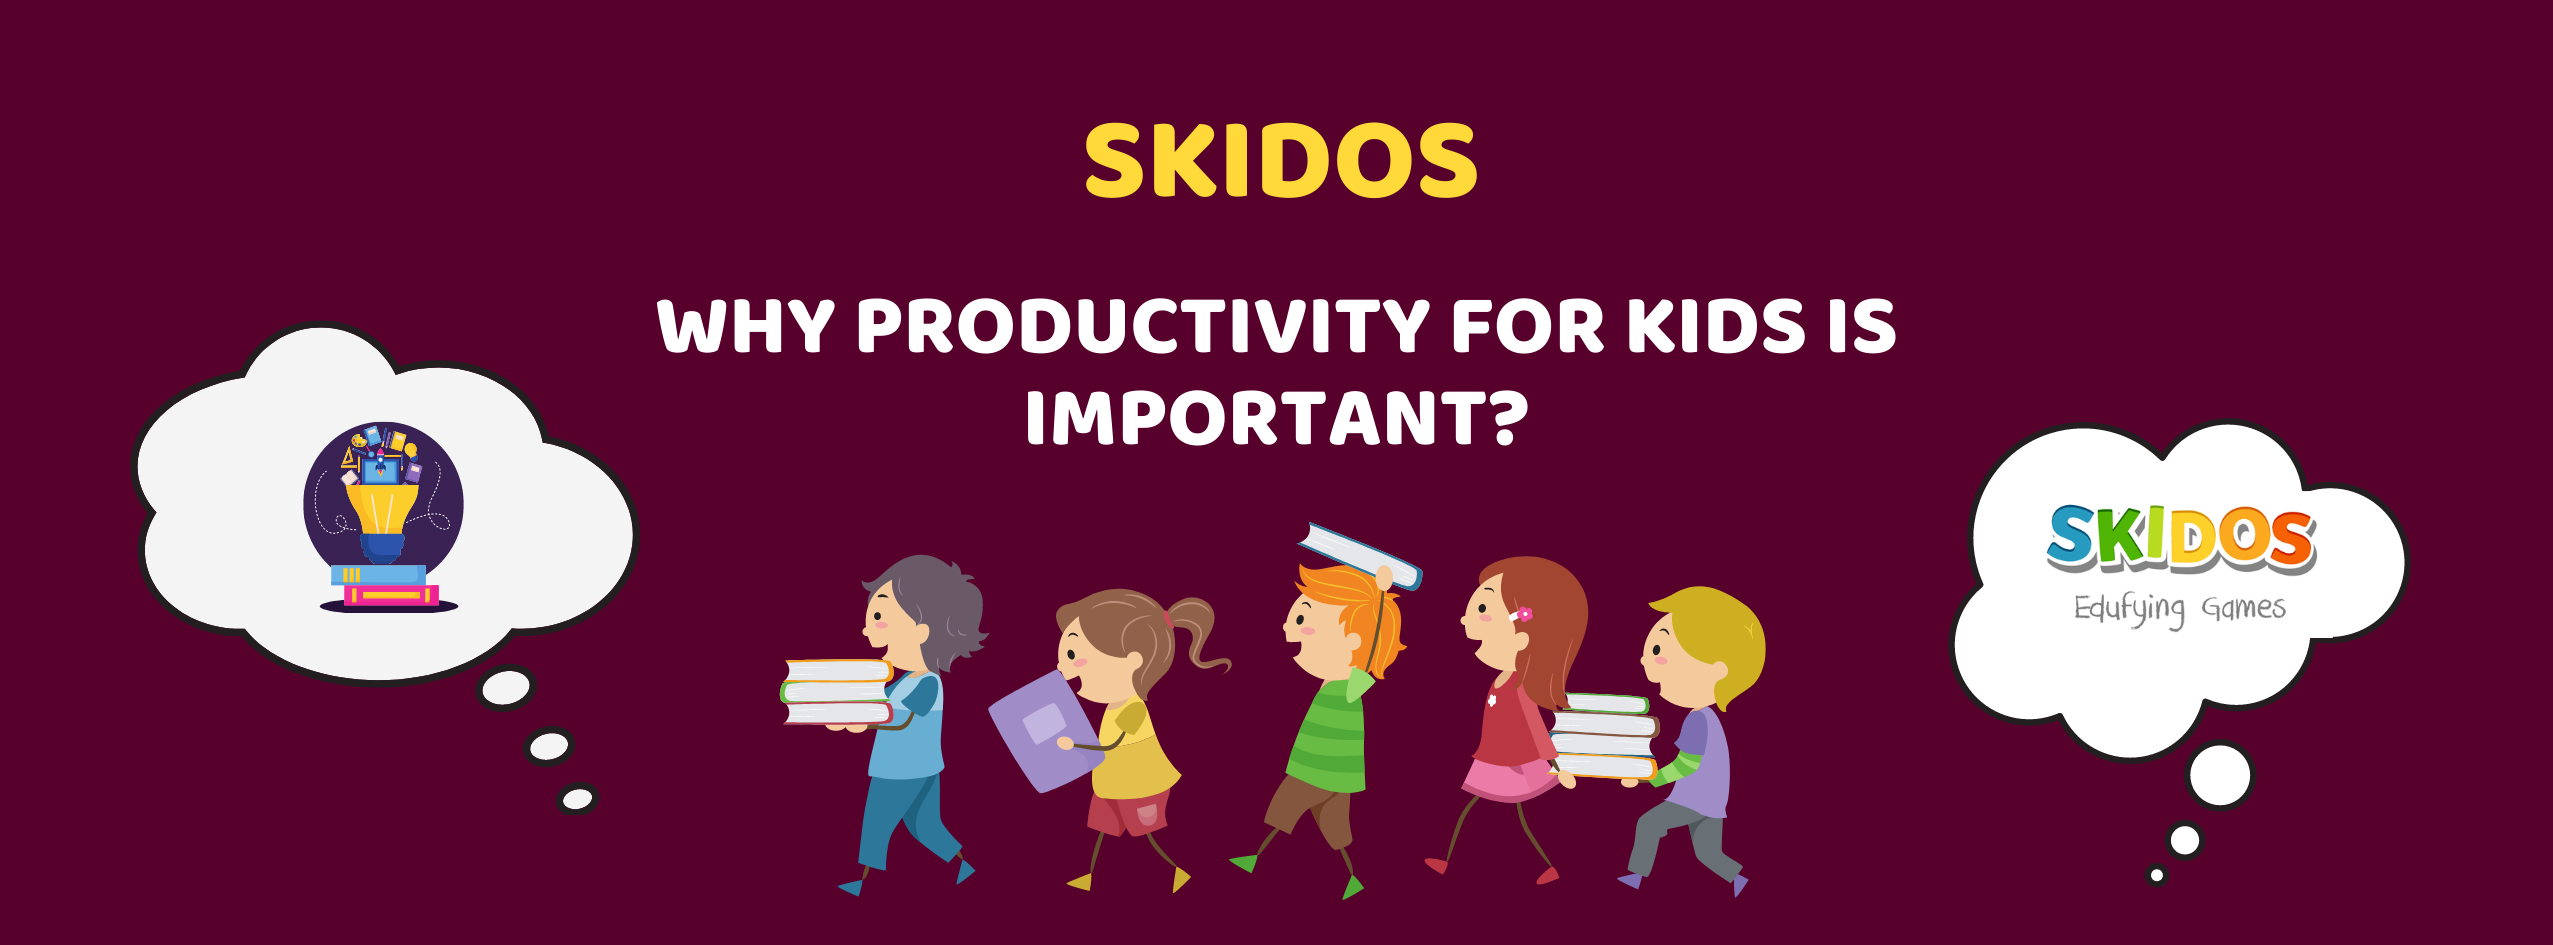 Why Productivity for Kids is important